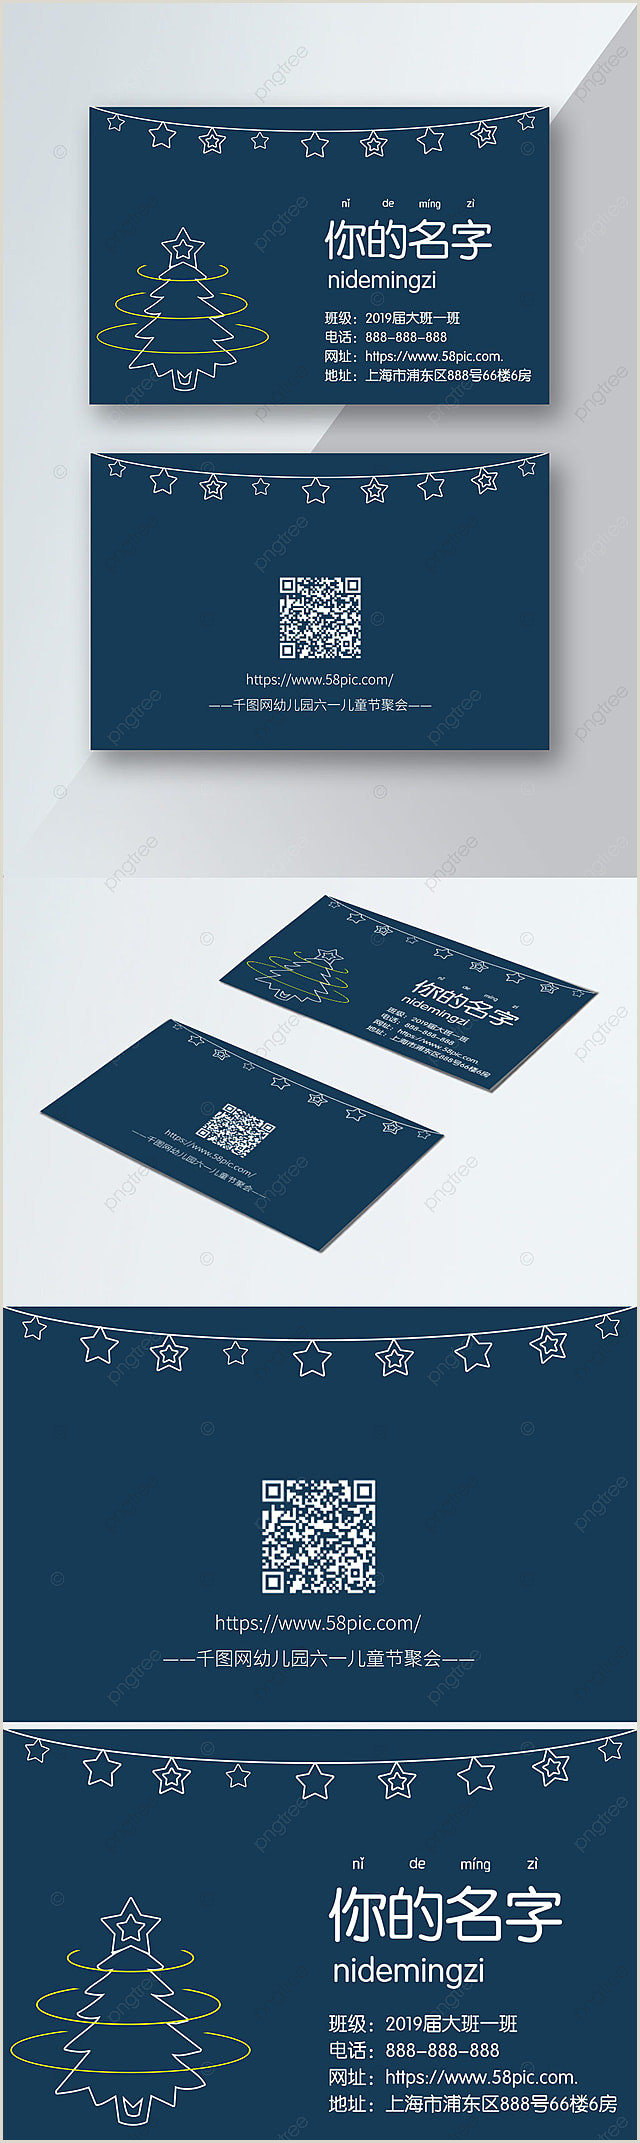 Presentation Card Template Introduction Card Templates Psd 3 Design Templates For Free